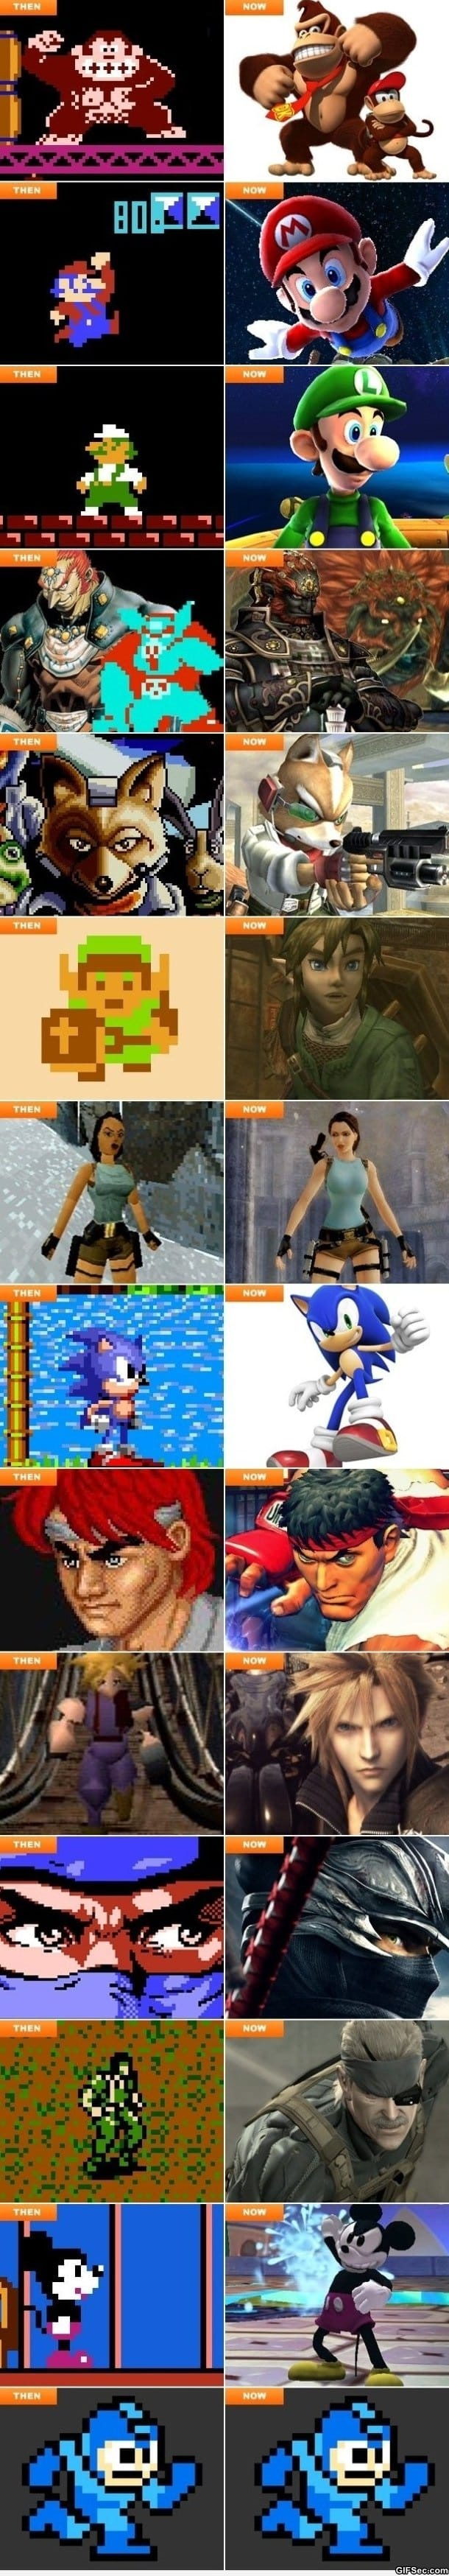 game-characters-then-and-now